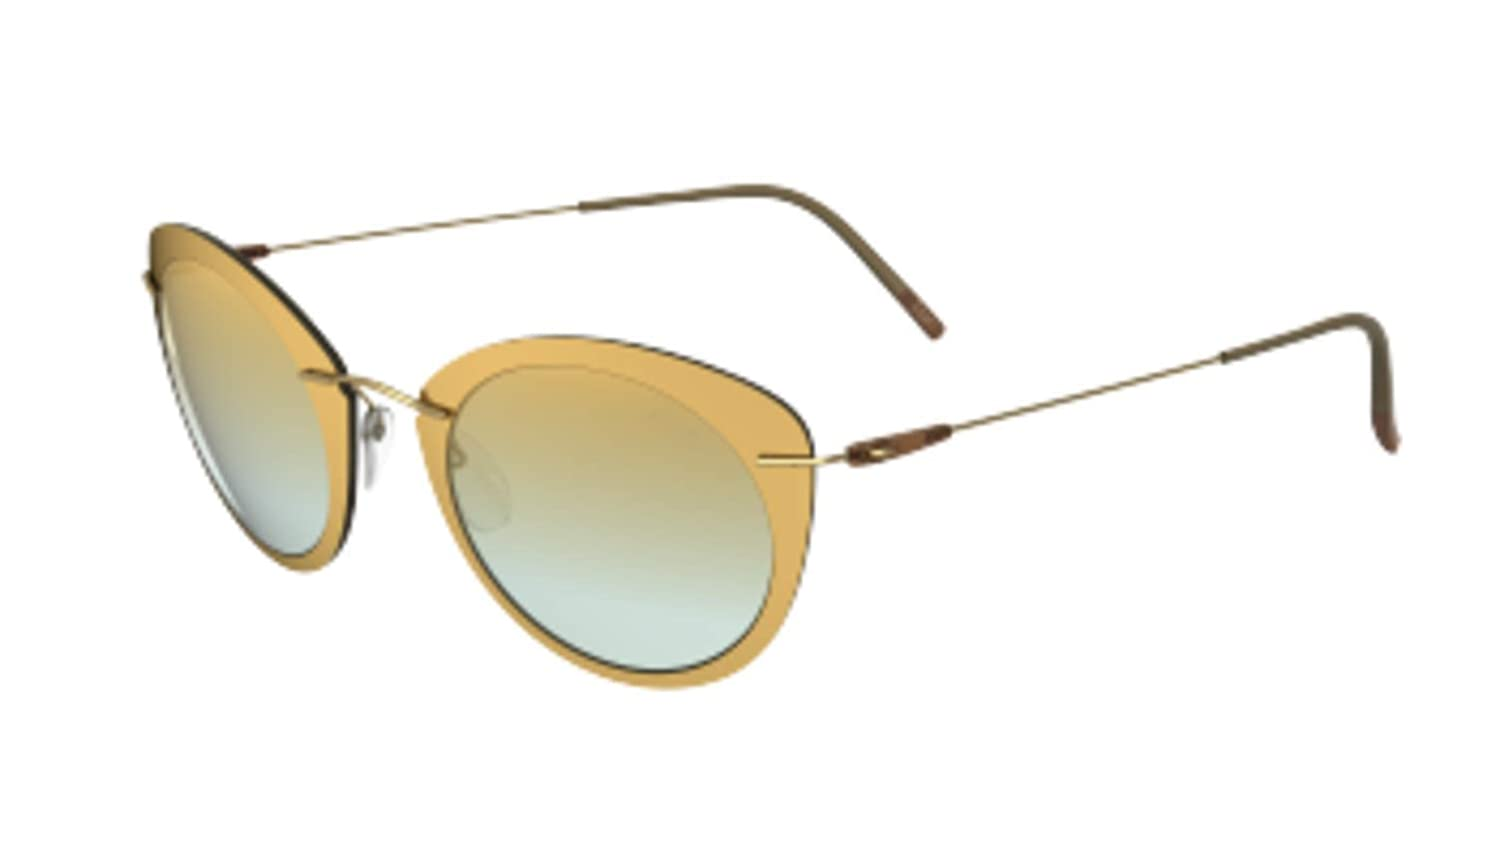 Sunglasses Silhouette Infinity Collection 8161 5540 Brass-Mint Mirror Gradient 4